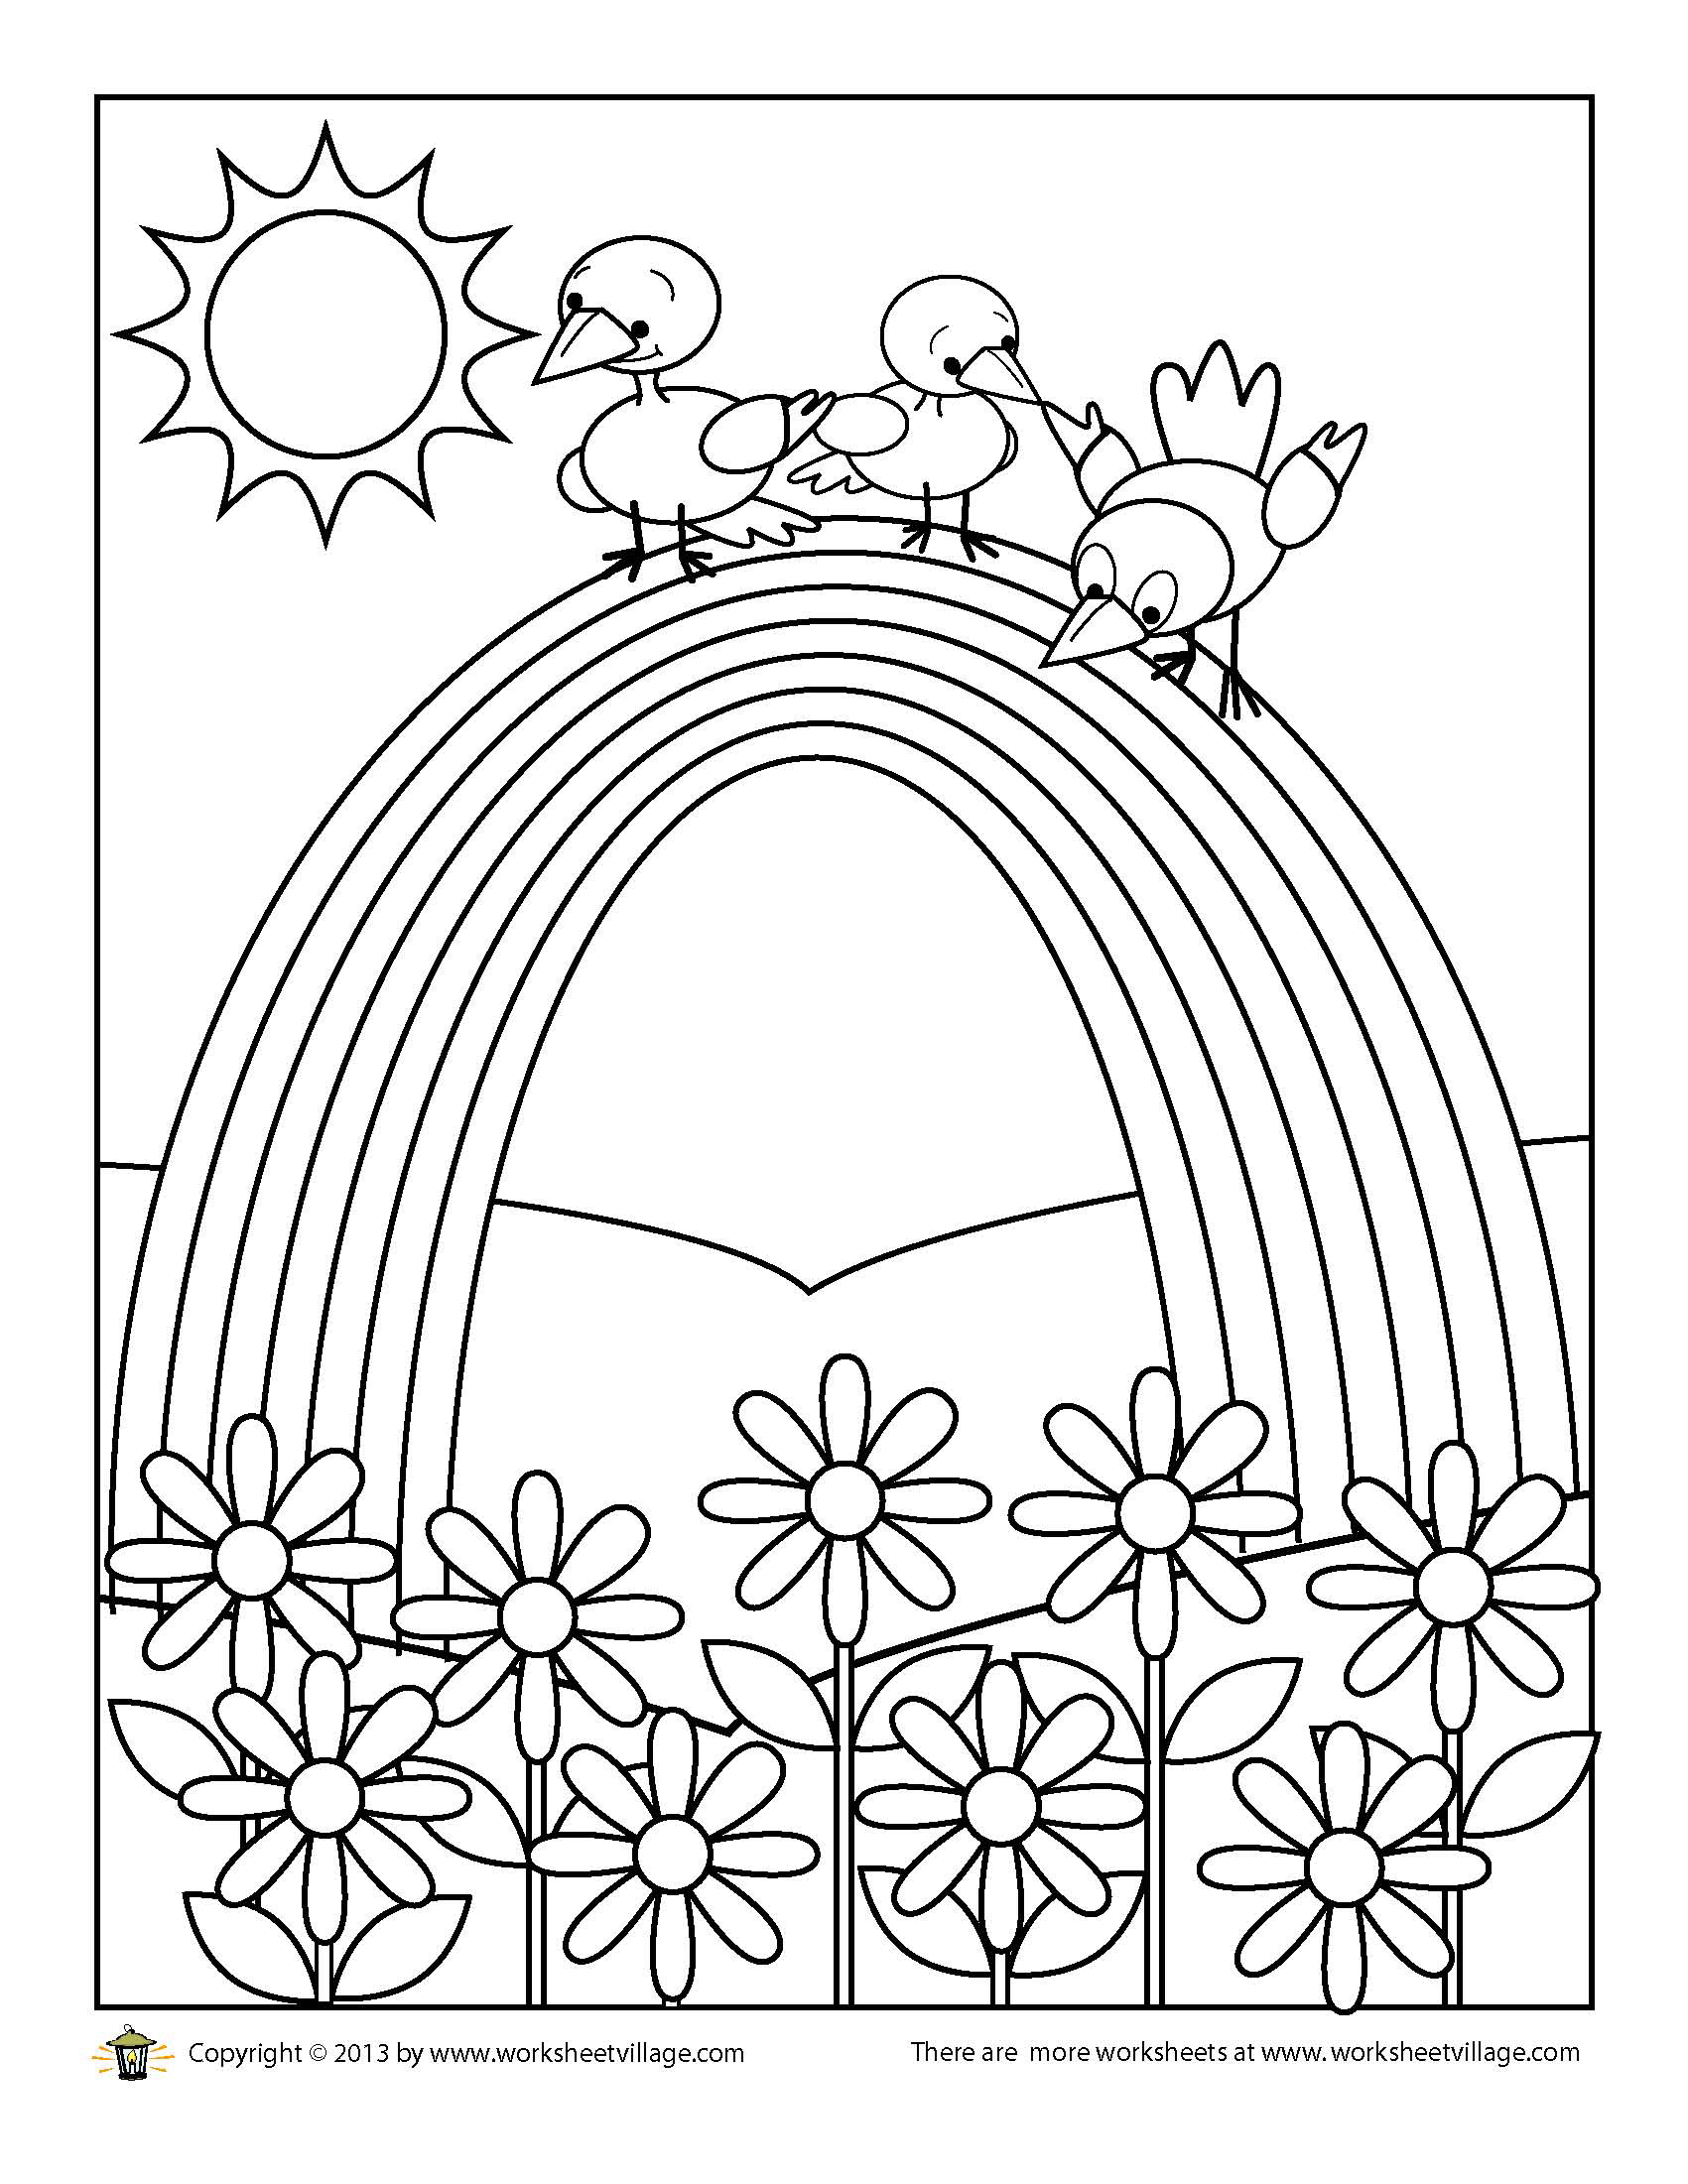 Birds On A Rainbow Coloring Page Worksheet Village